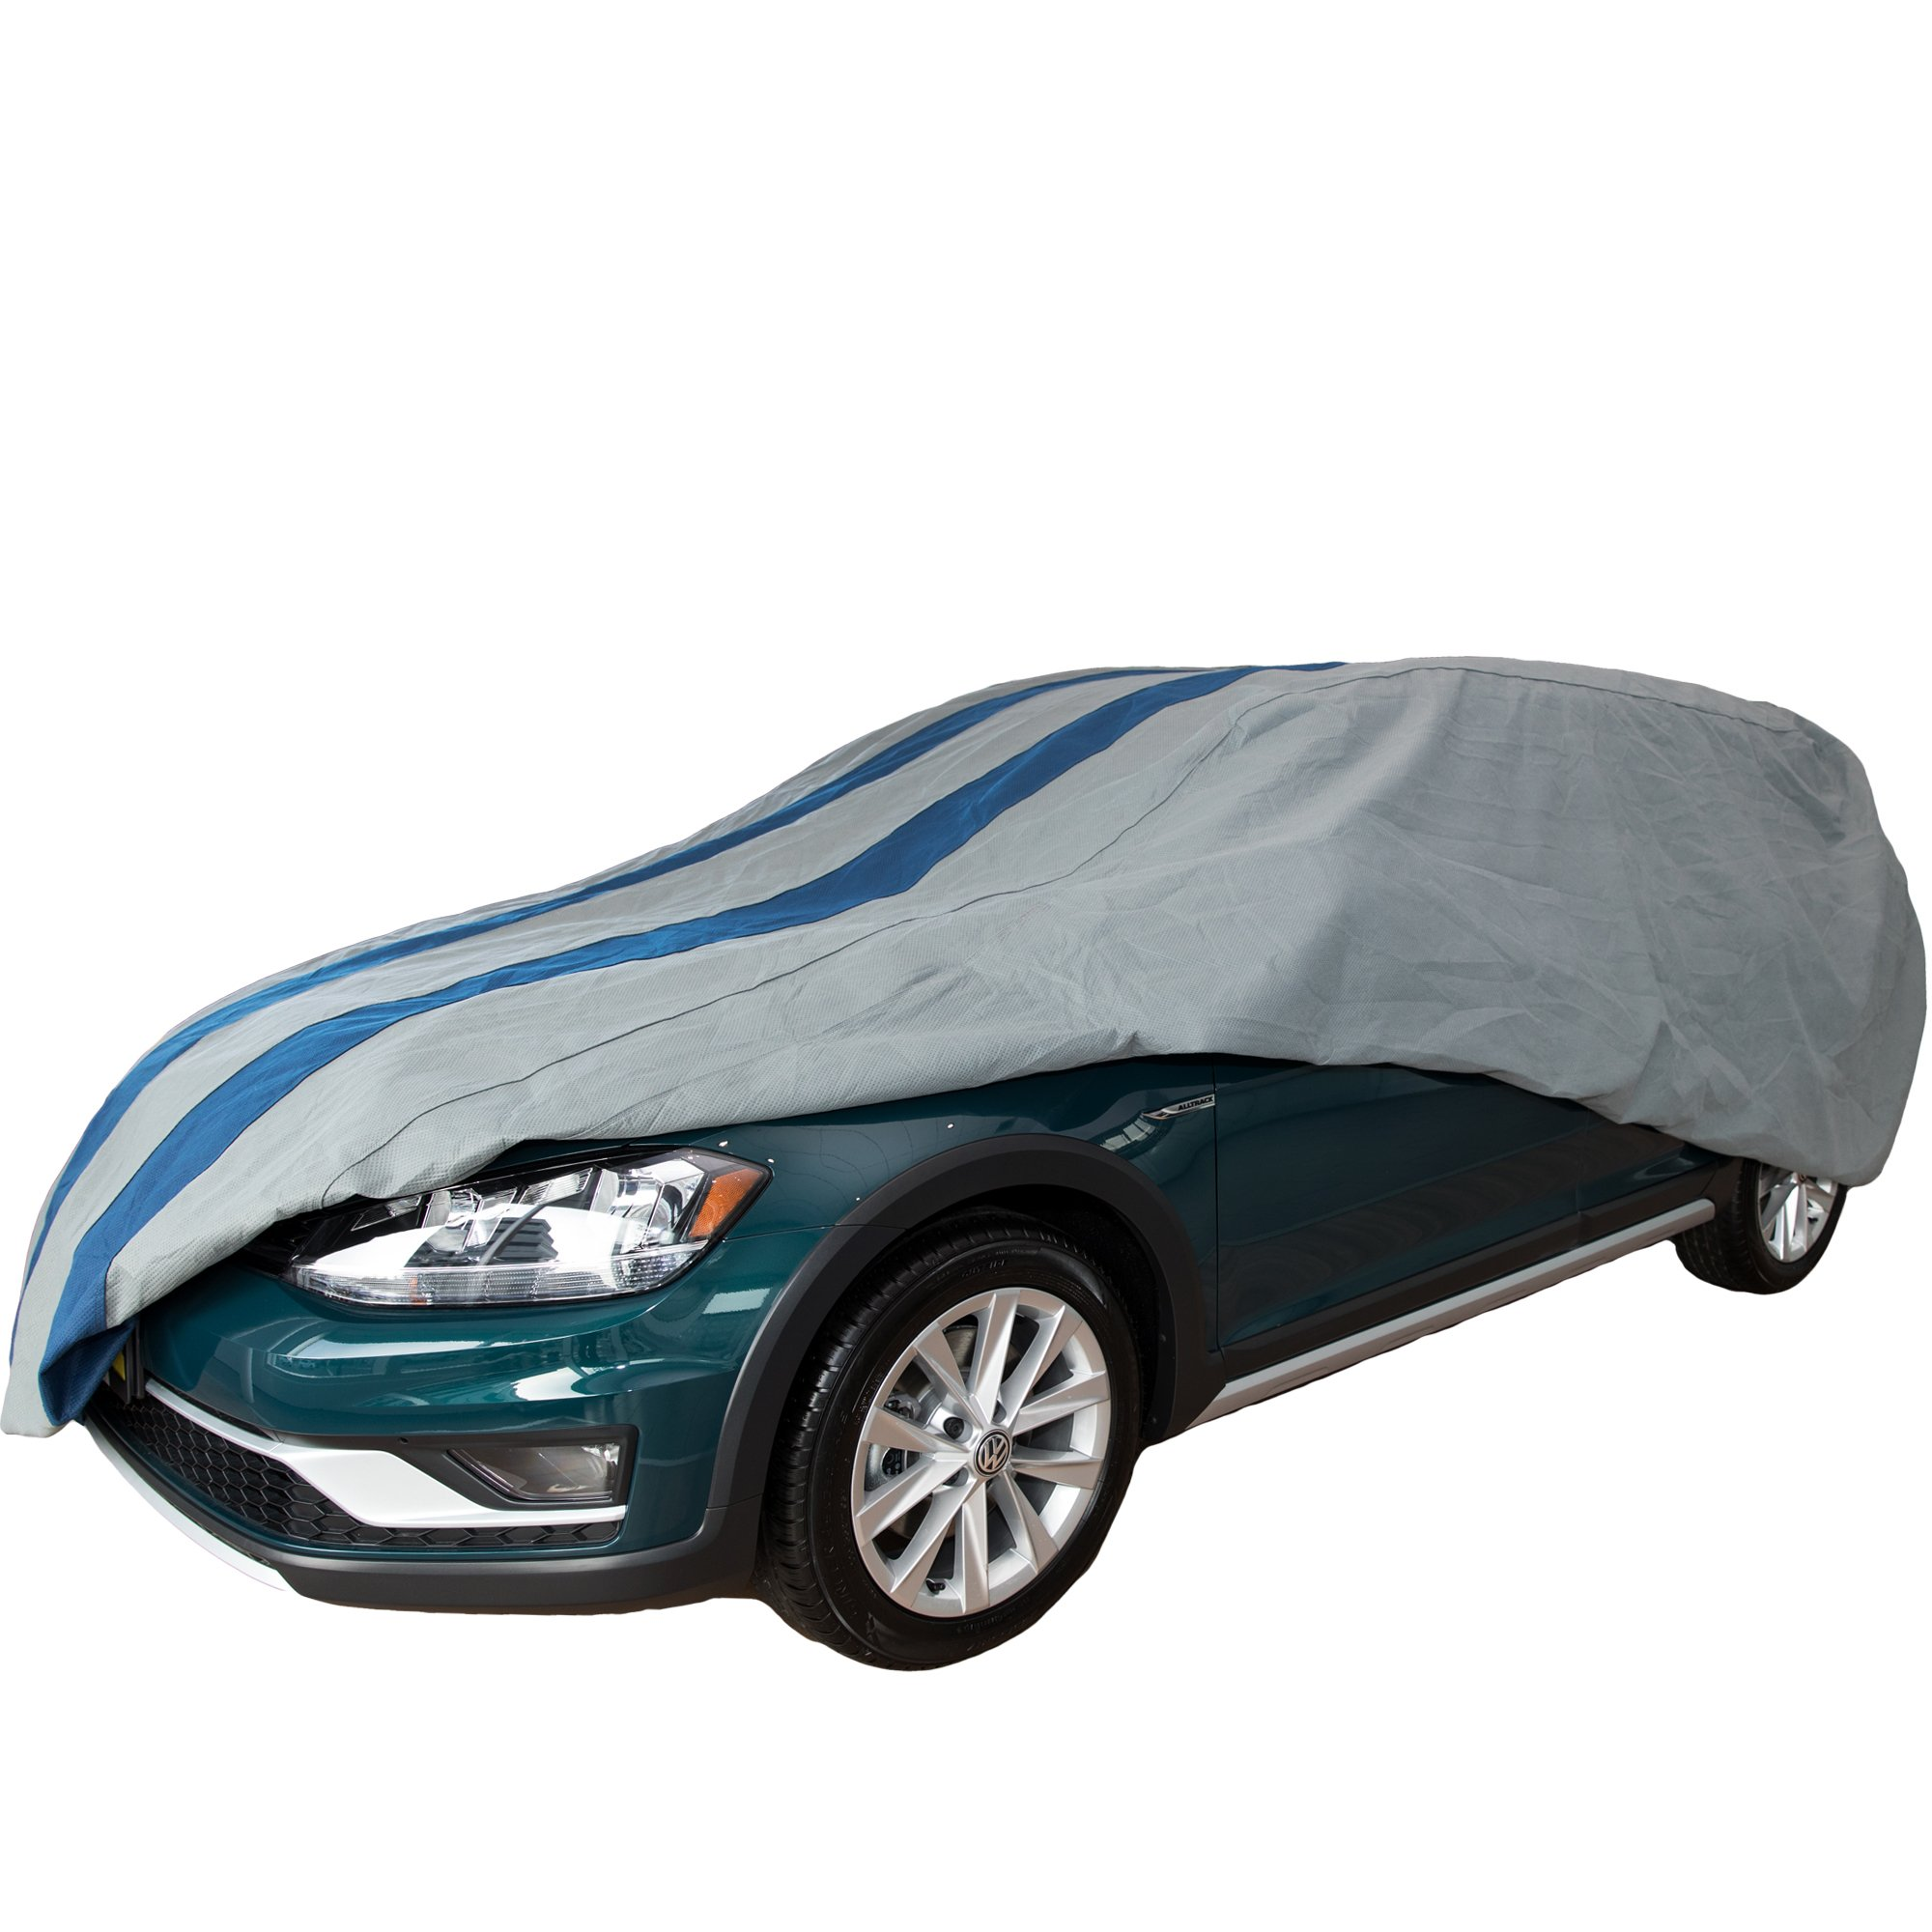 Duck Covers Rally X Defender Station Wagon Cover, For Wagons up to 15 ft. 4 in. L